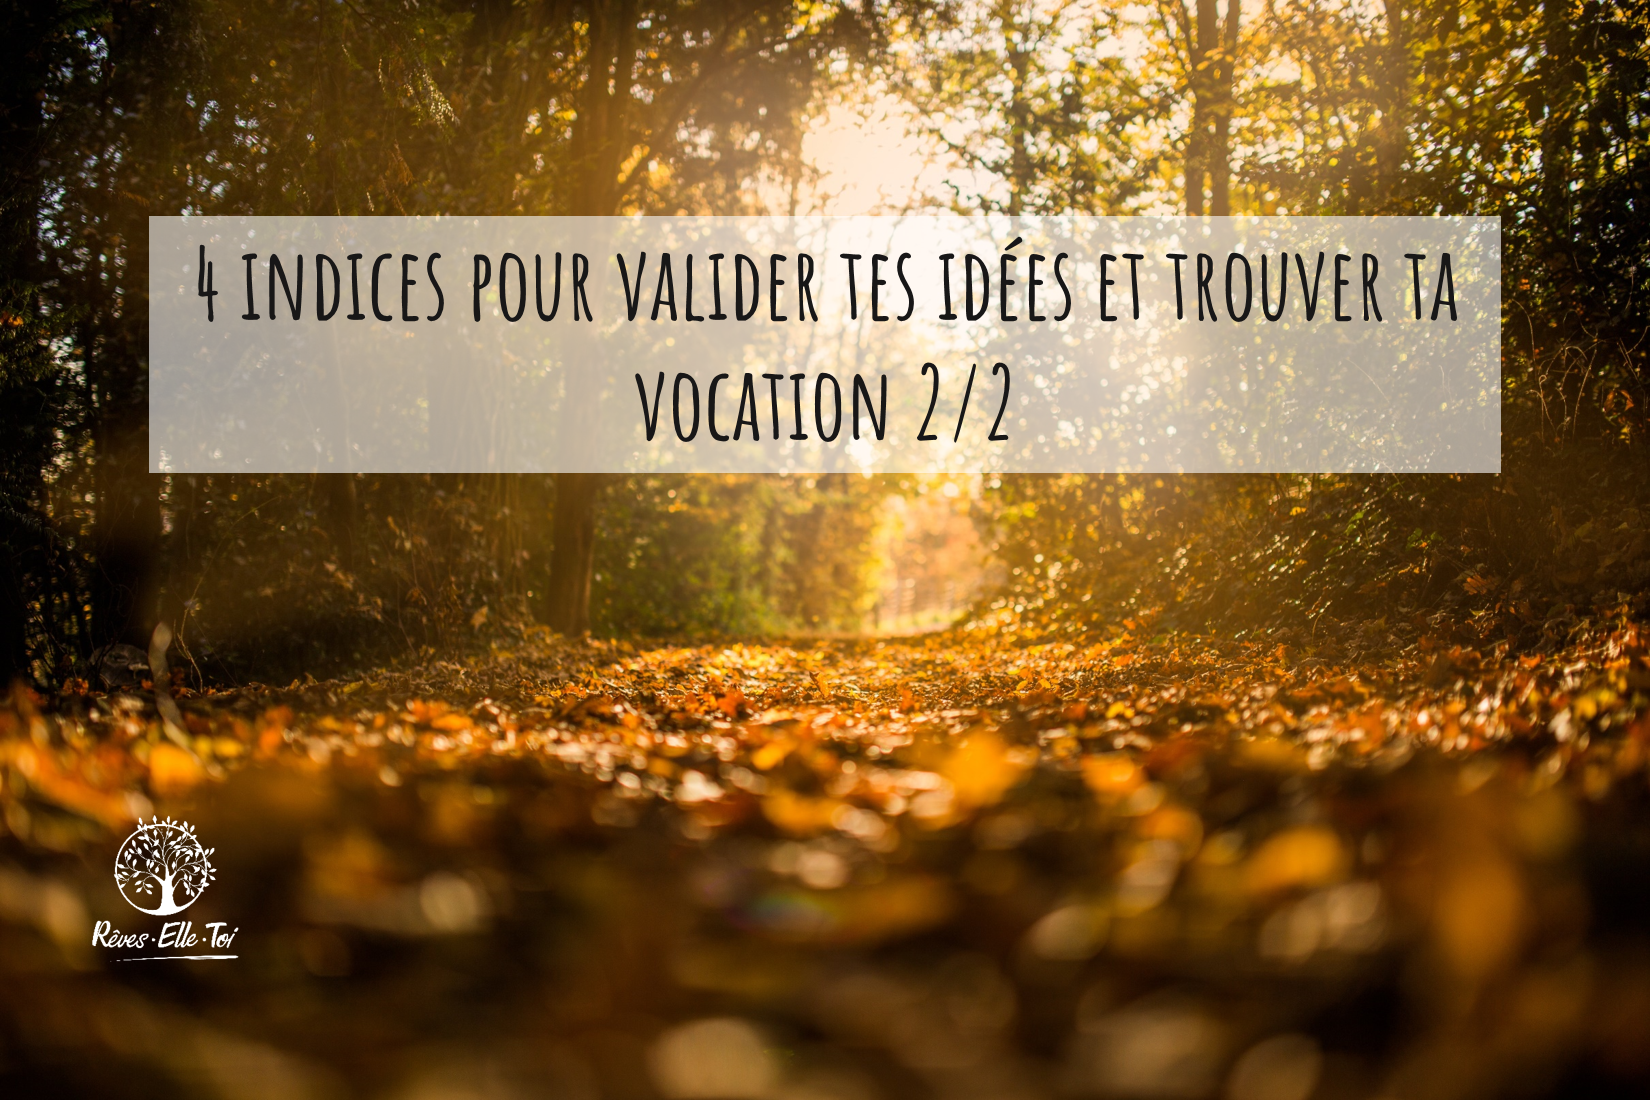 4 indices valider projet 2